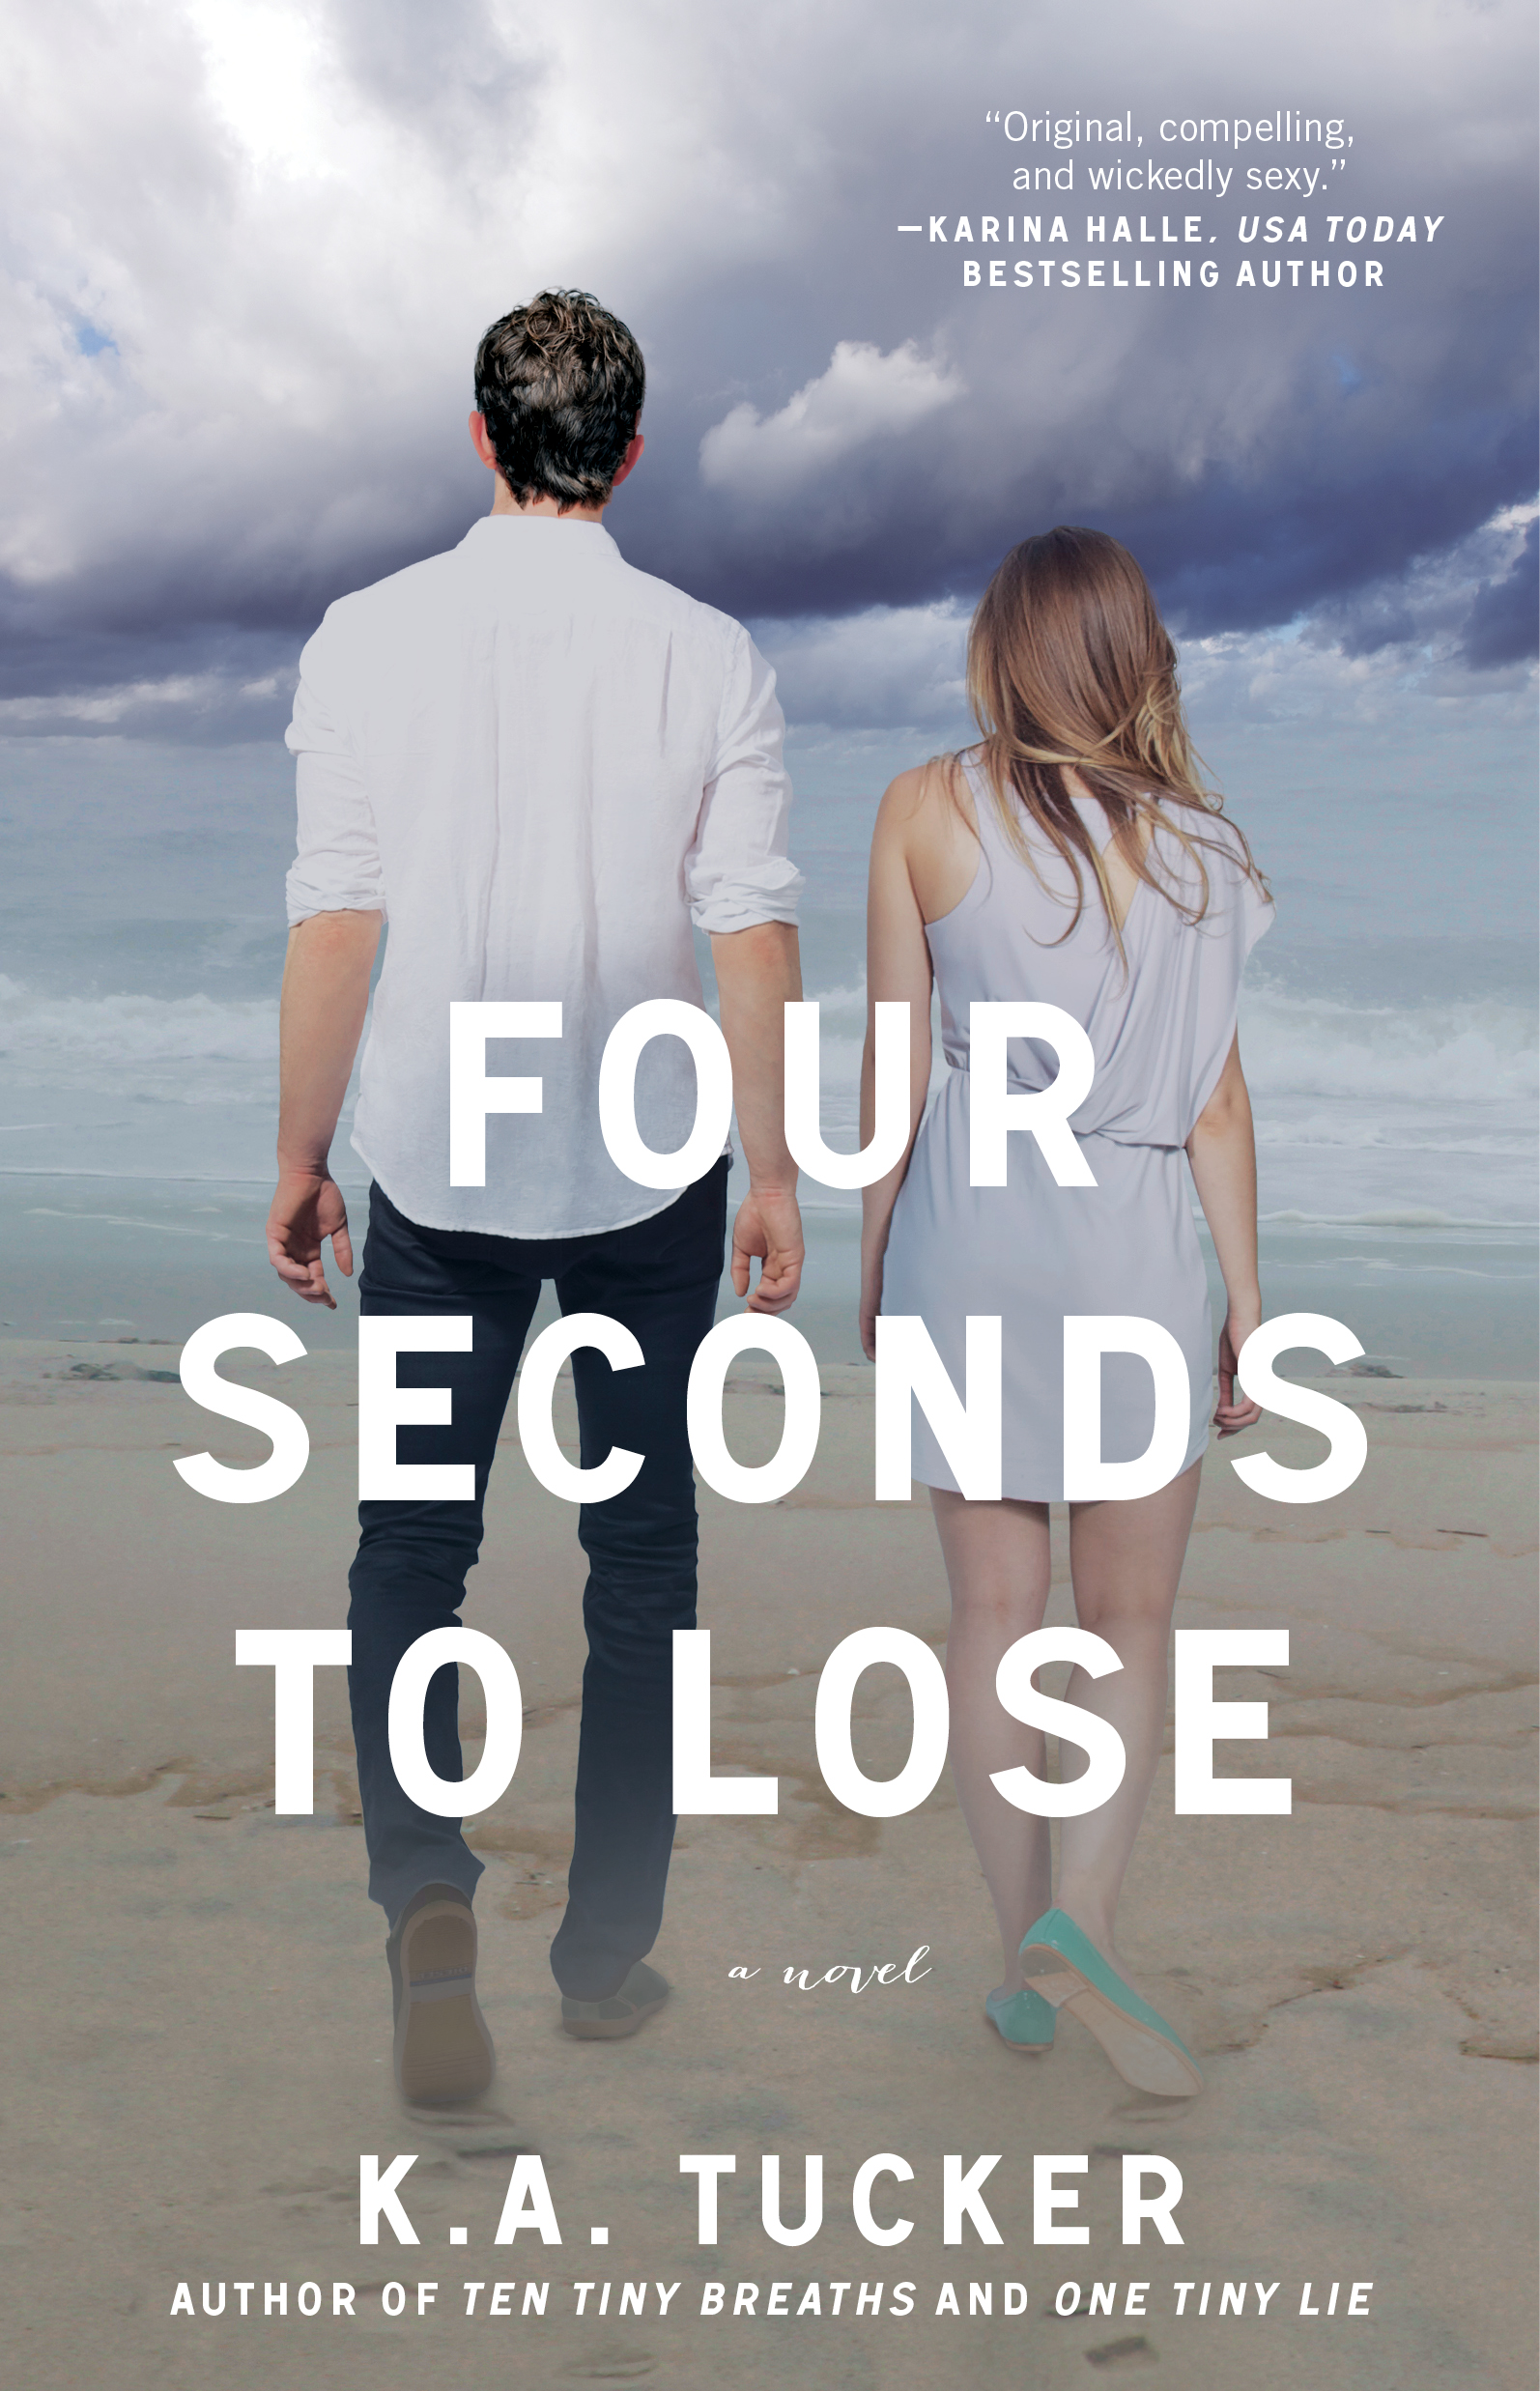 K.A. Tucker's FOUR SECONDS TO LOSE Release Day & Giveaway